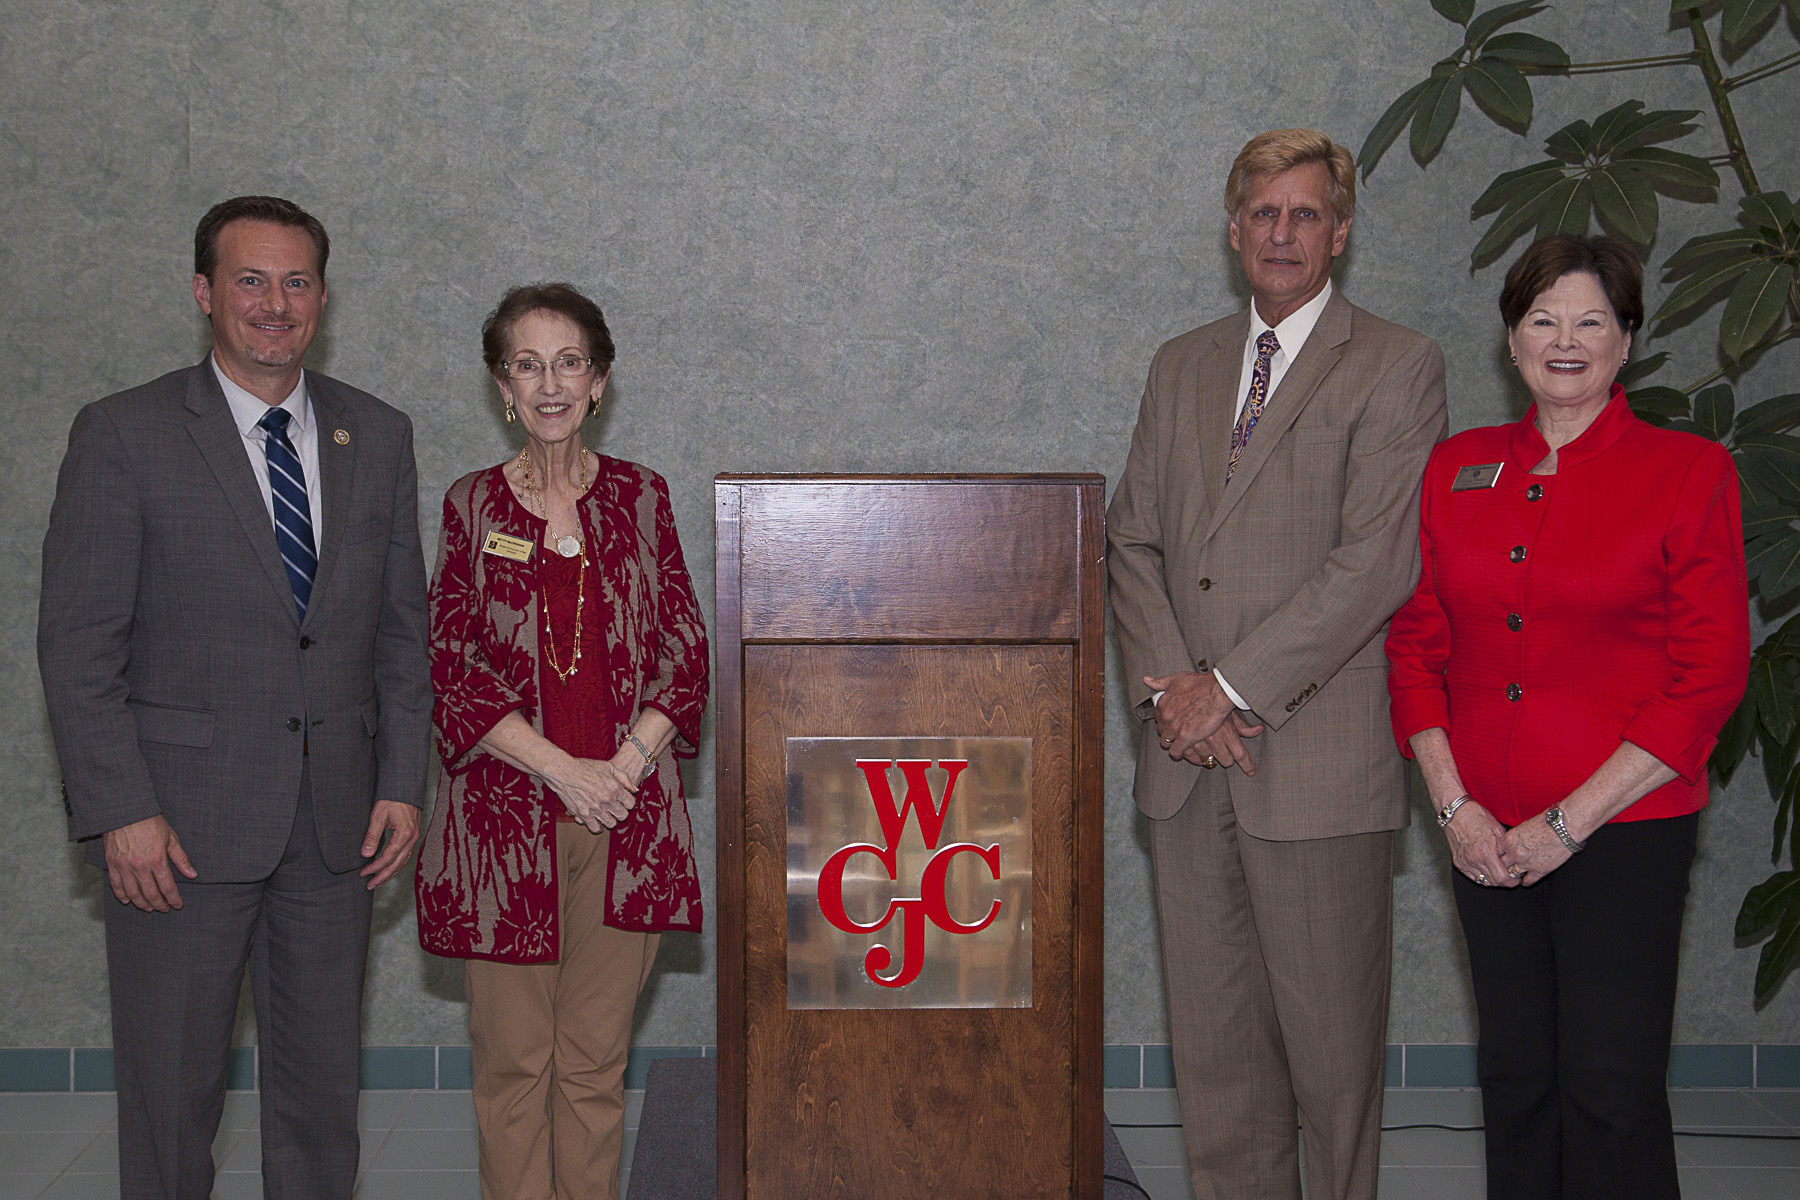 ONGOING SUPPORT - WCJC event recognizes legislators for support of education